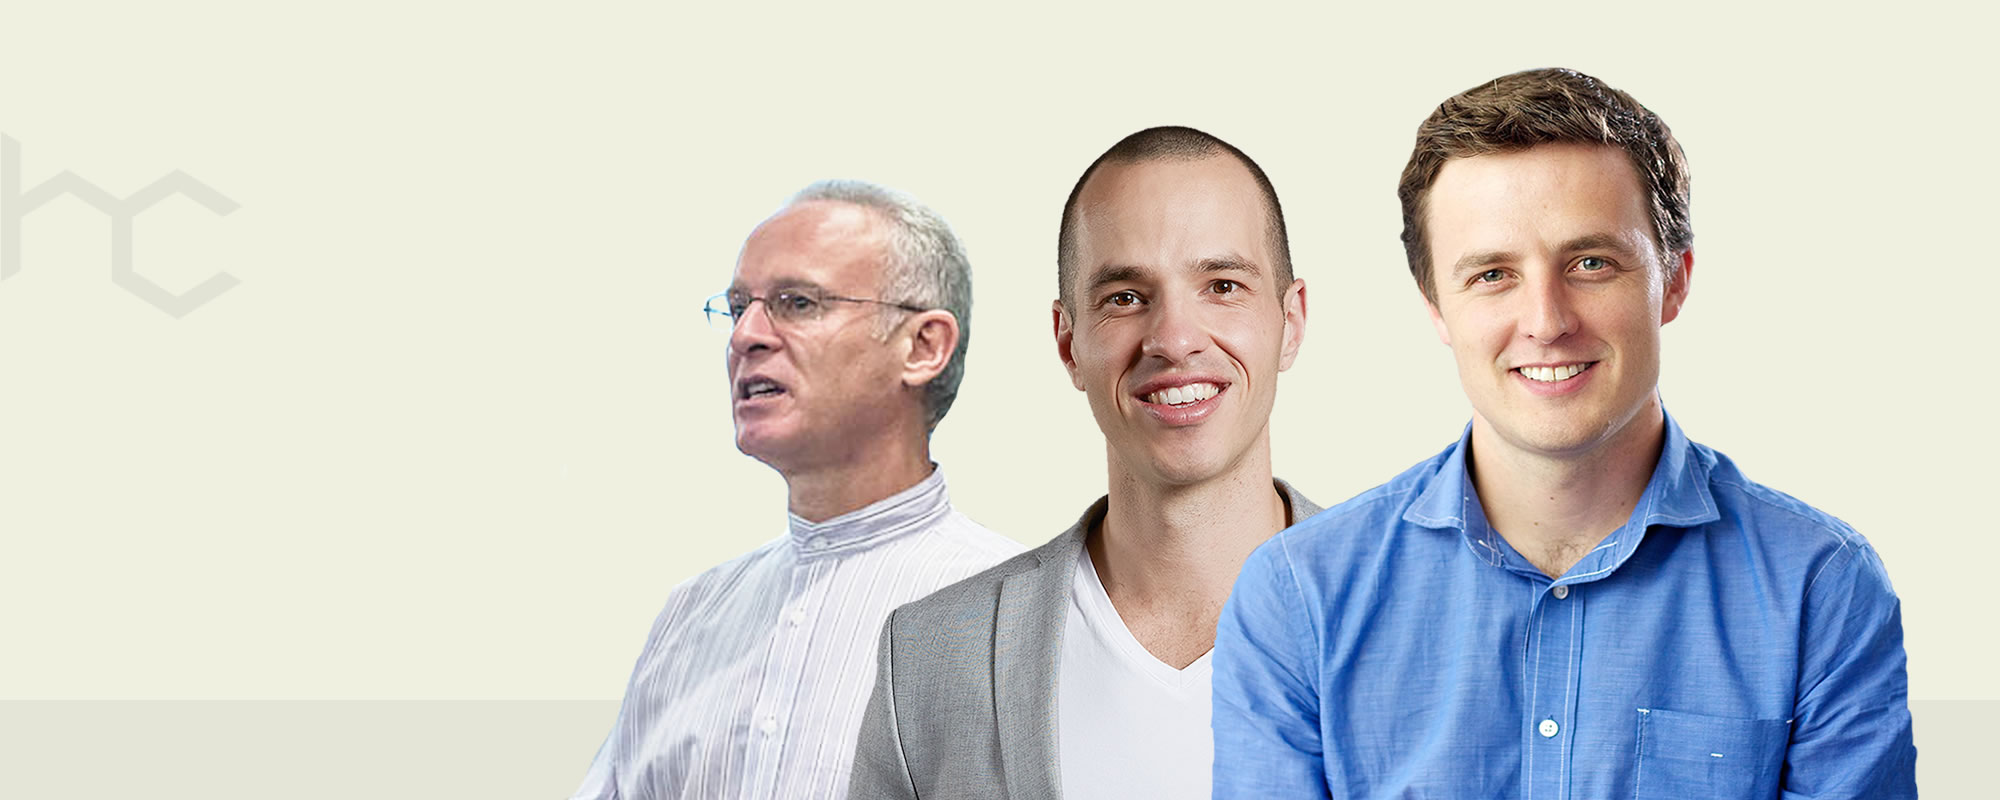 Appearing on Heavy Chef stage, November 1st, in Cape Town: Arthur Goldstuck (CEO World Wide Worx), Brad Elliott (CEO of Platinum Seed) and Andrew Smith (CEO of Yuppiechef).